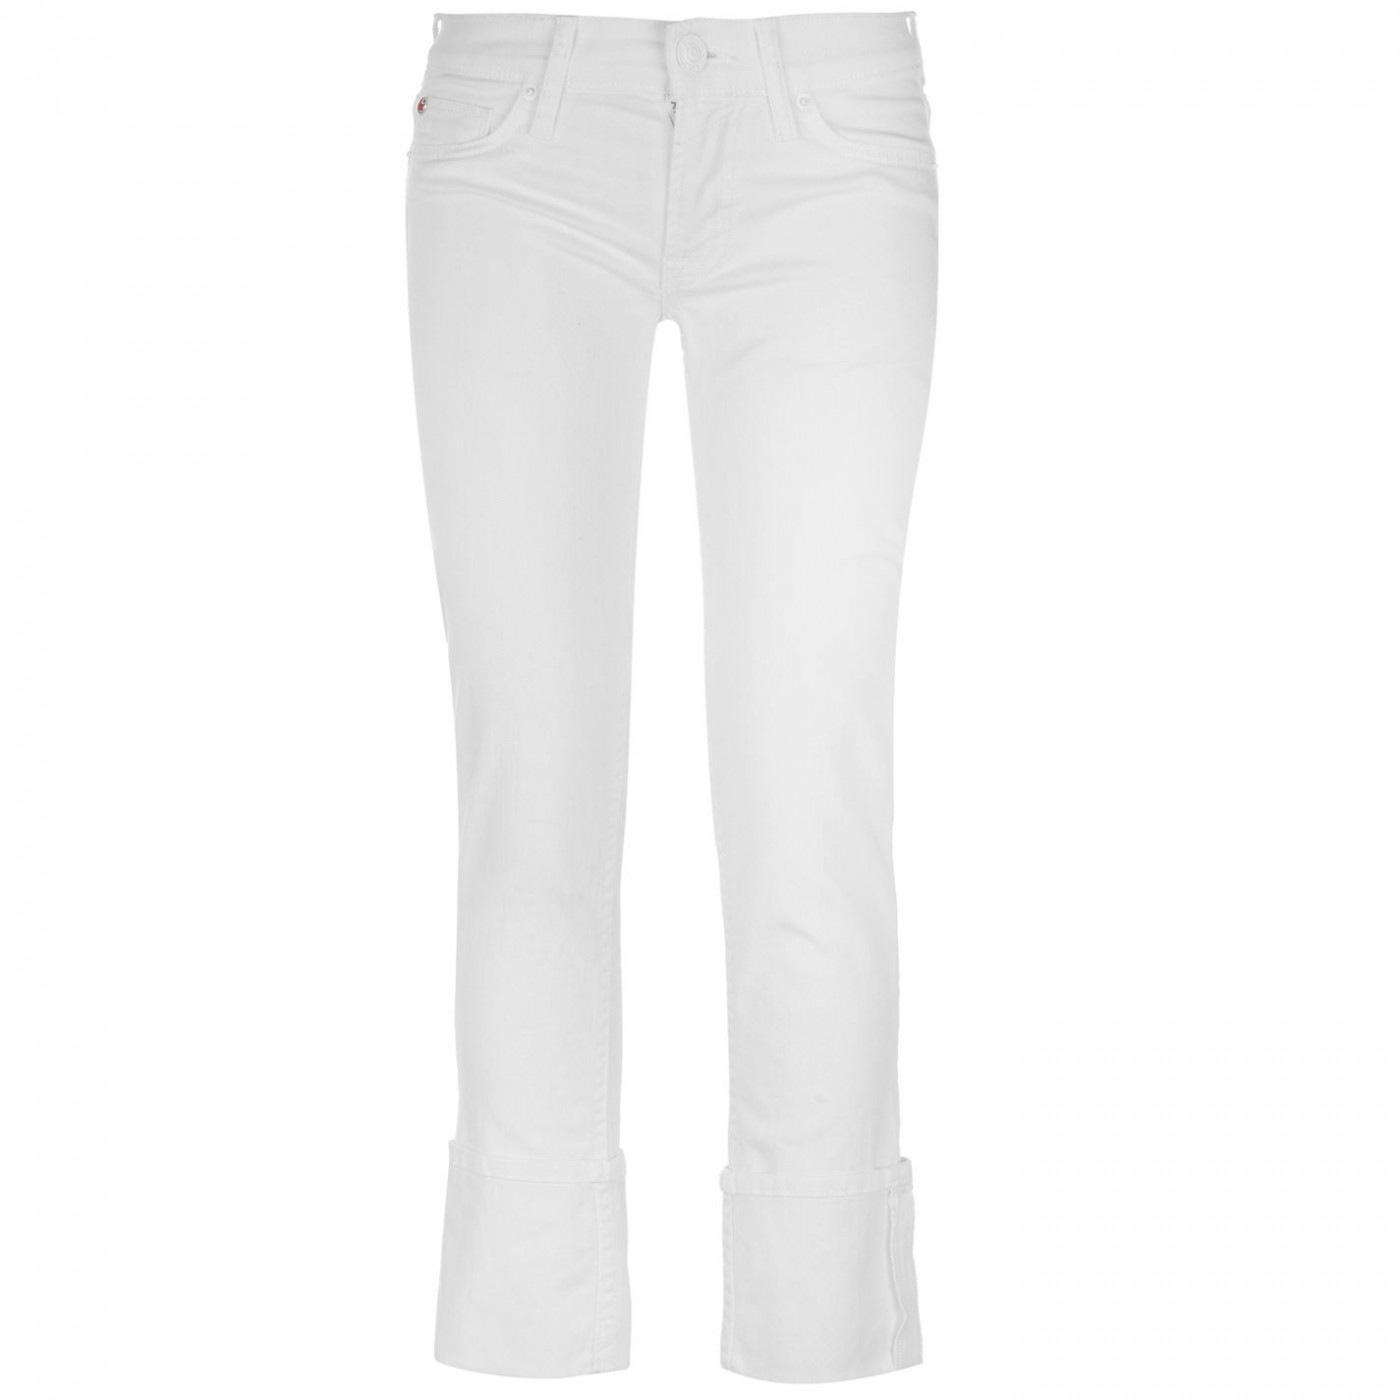 Hudson Jeans Crop Jeans Ladies